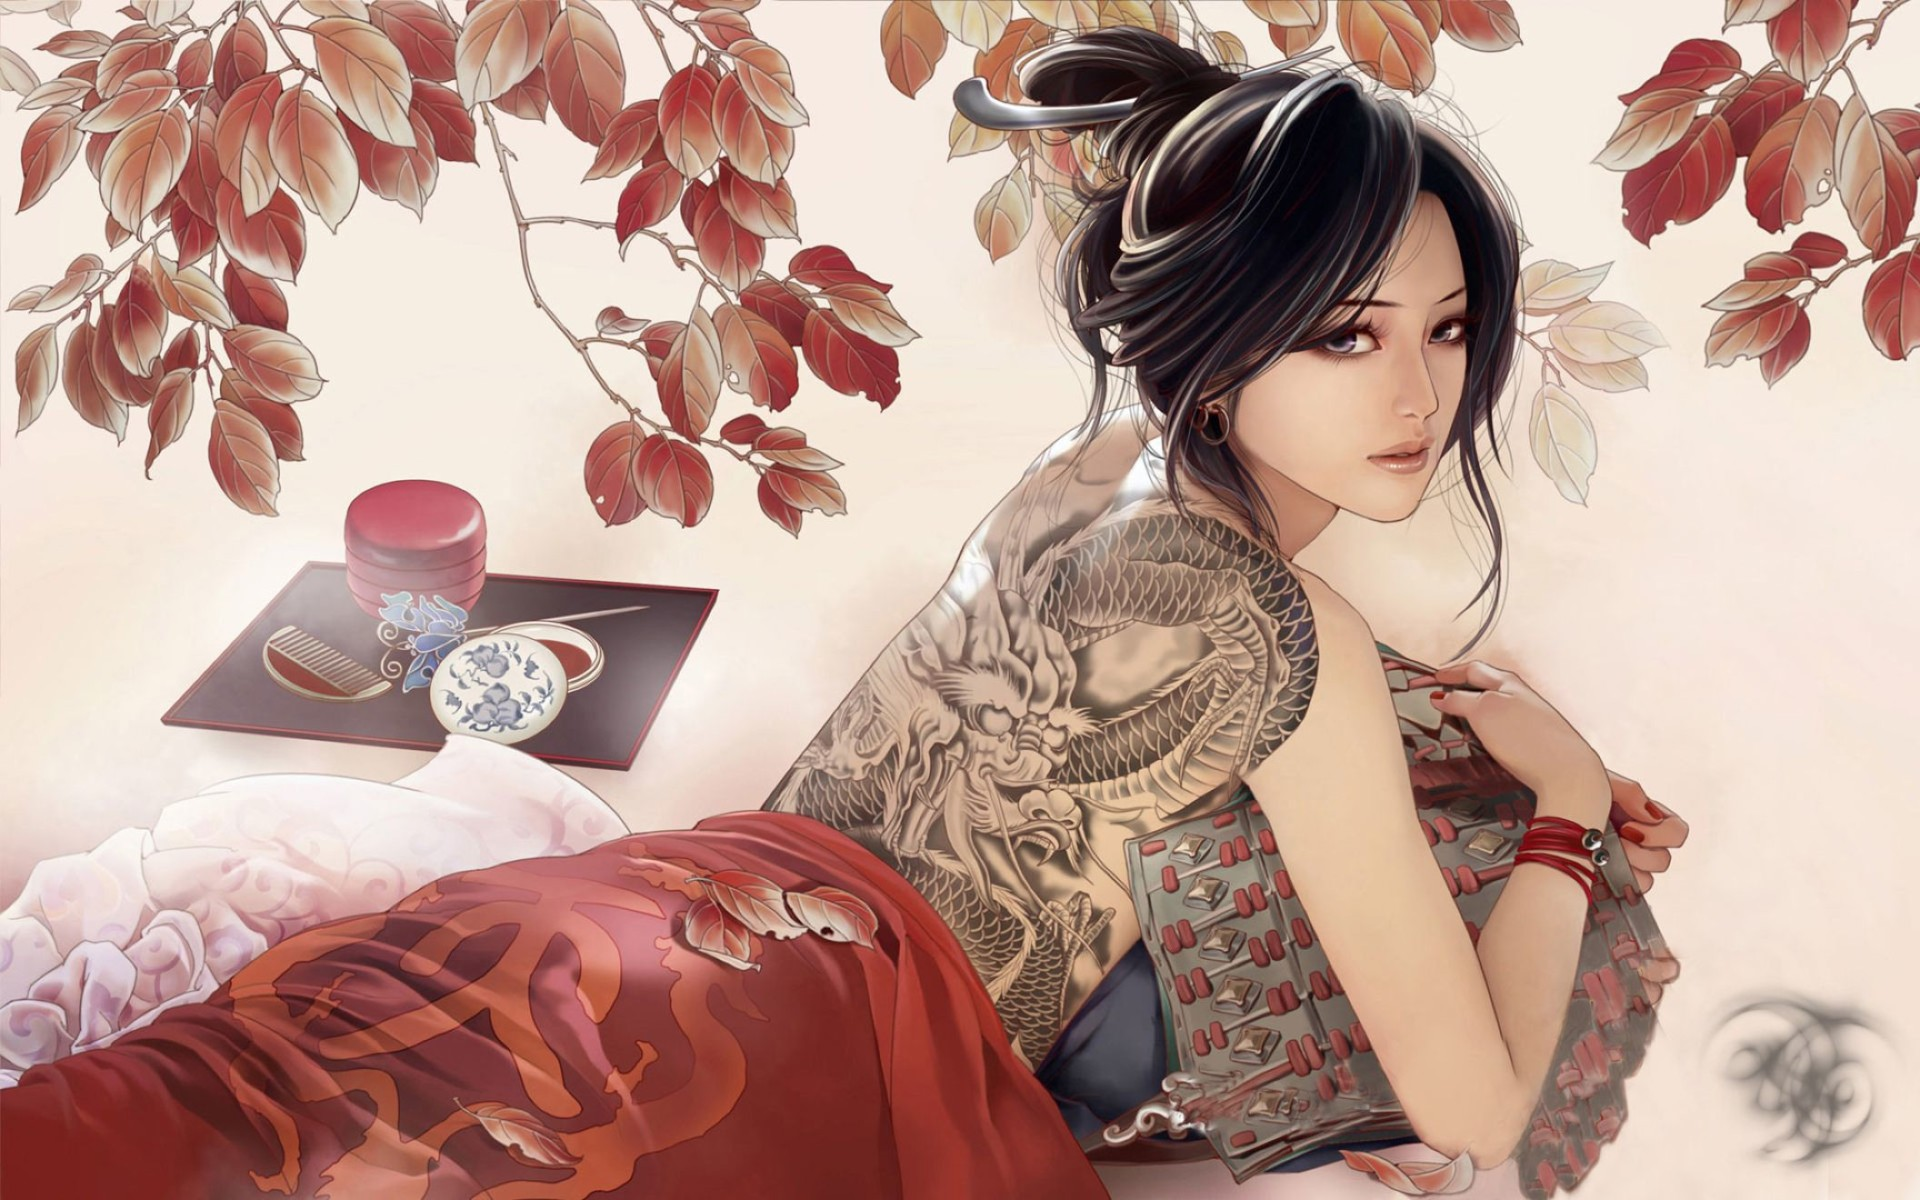 Anime Girl Tattoos Desktop Wallpaper